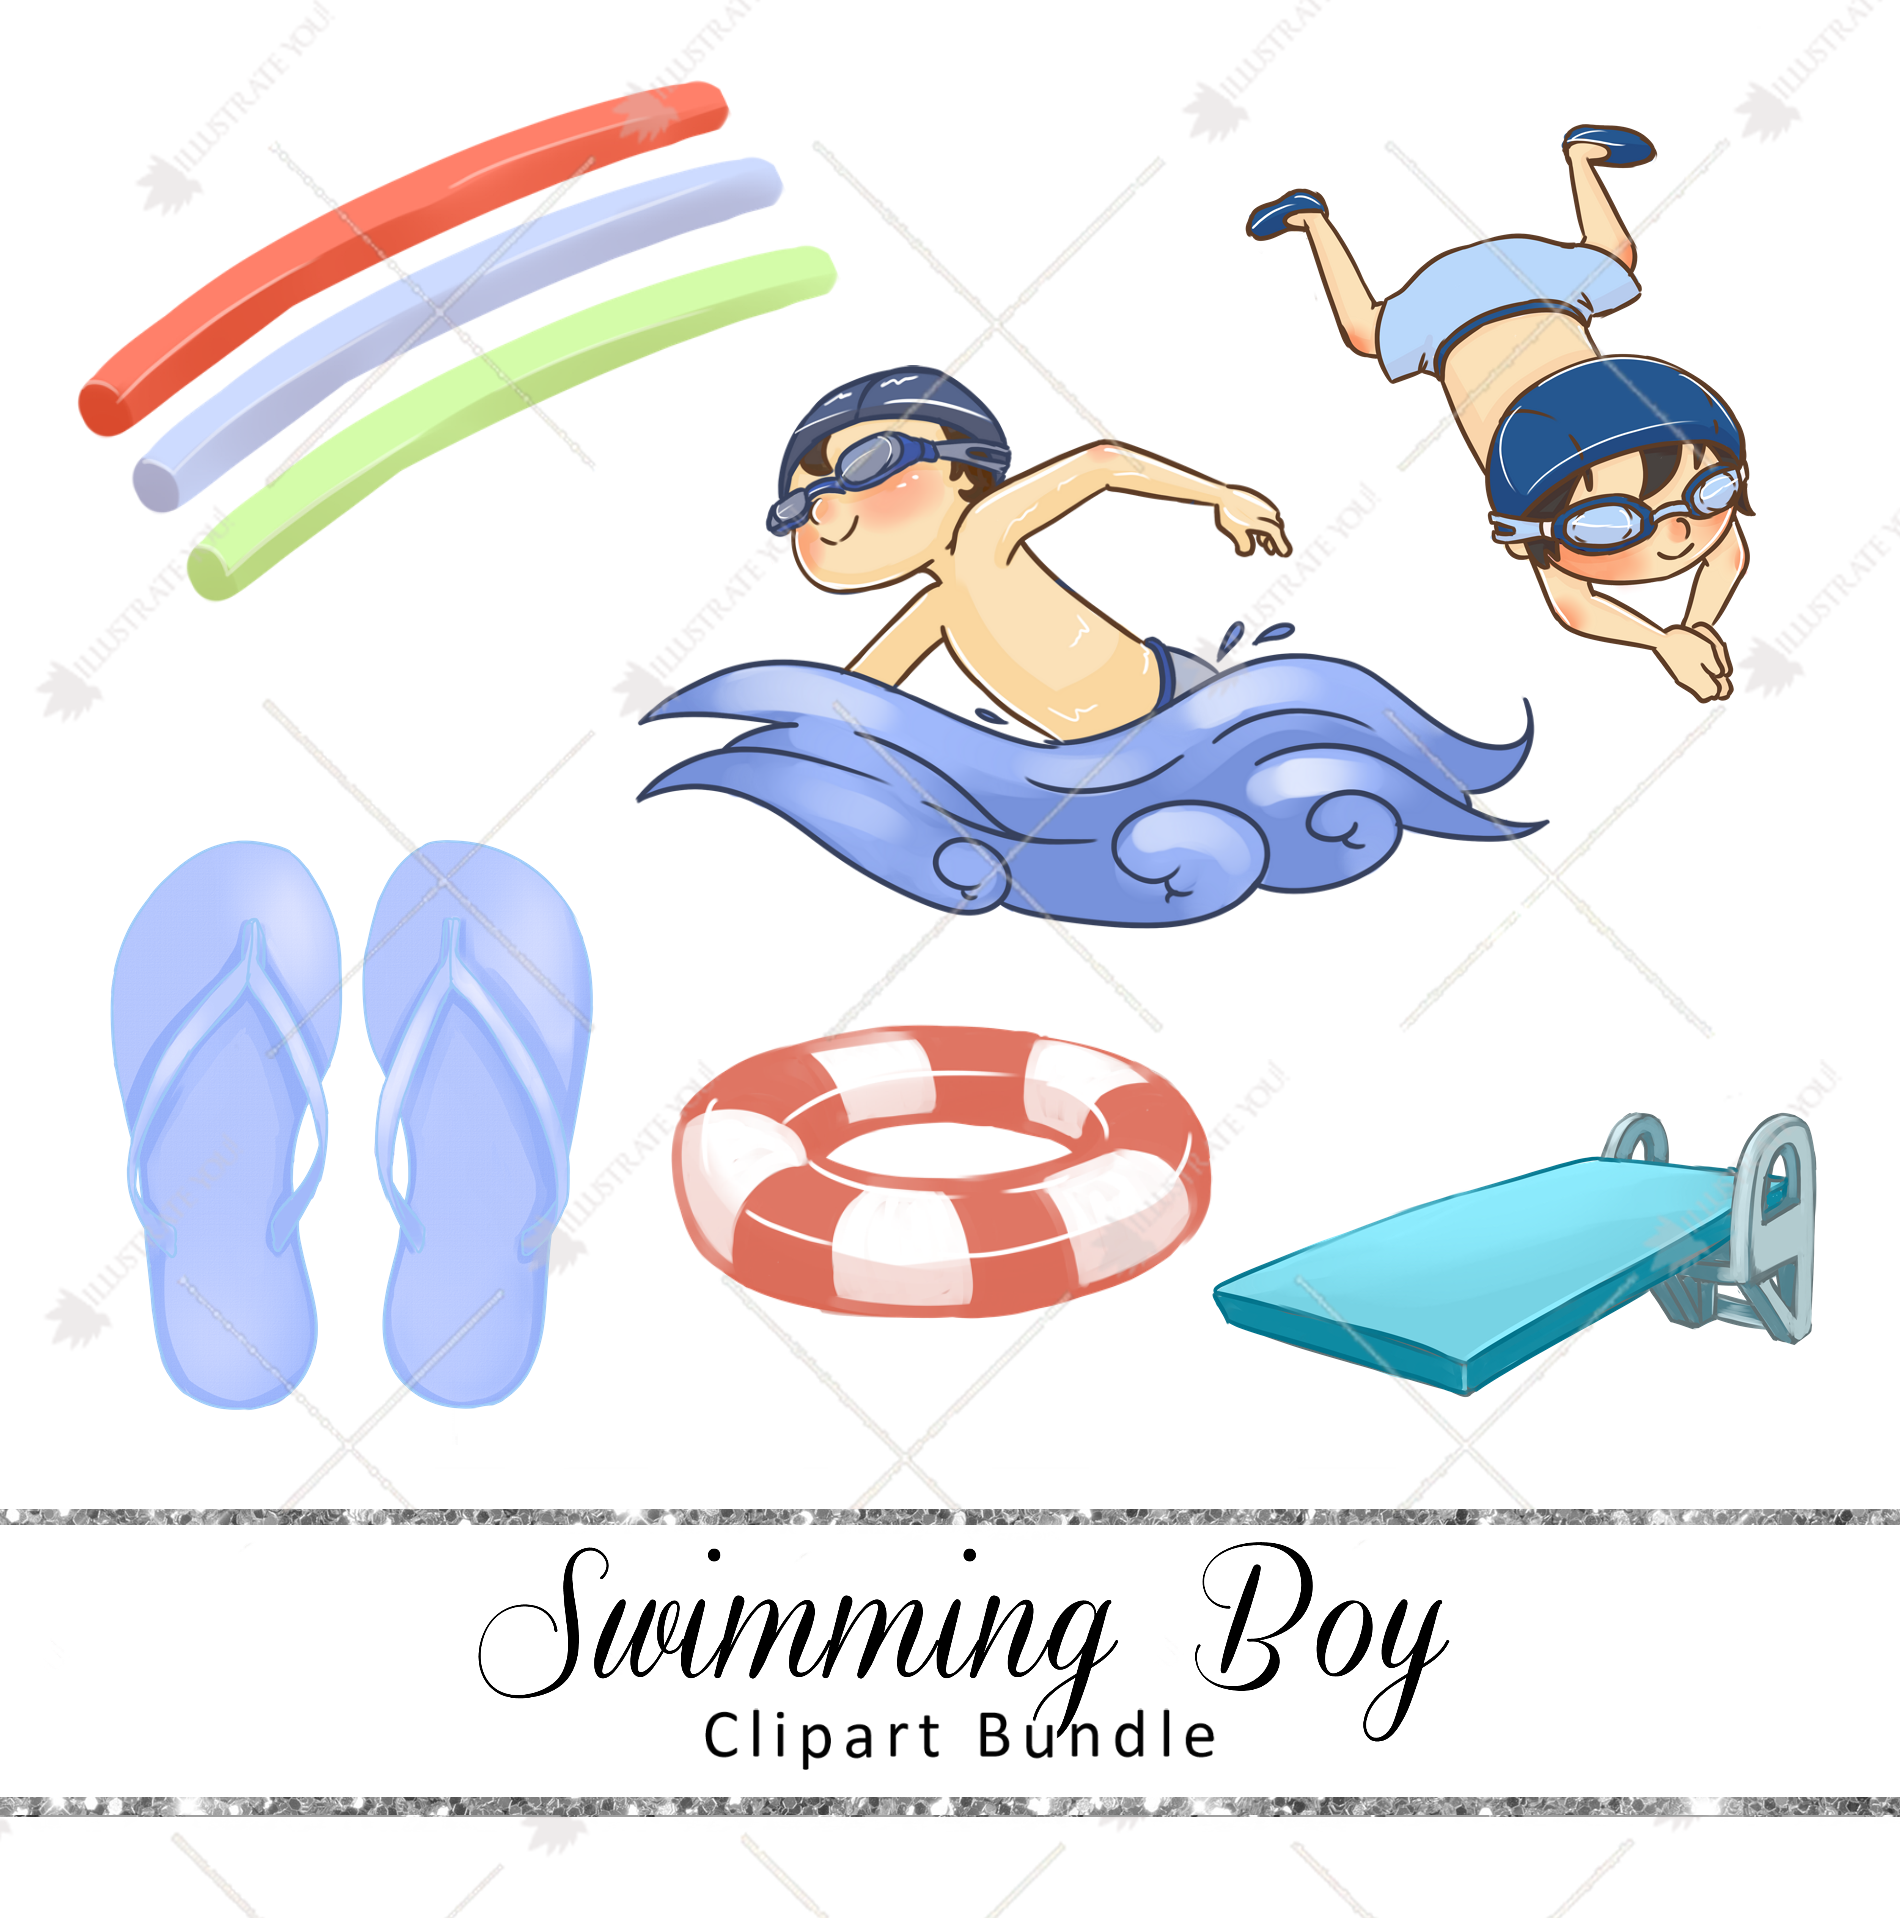 Clipart Bundle - Swimming (Boy)